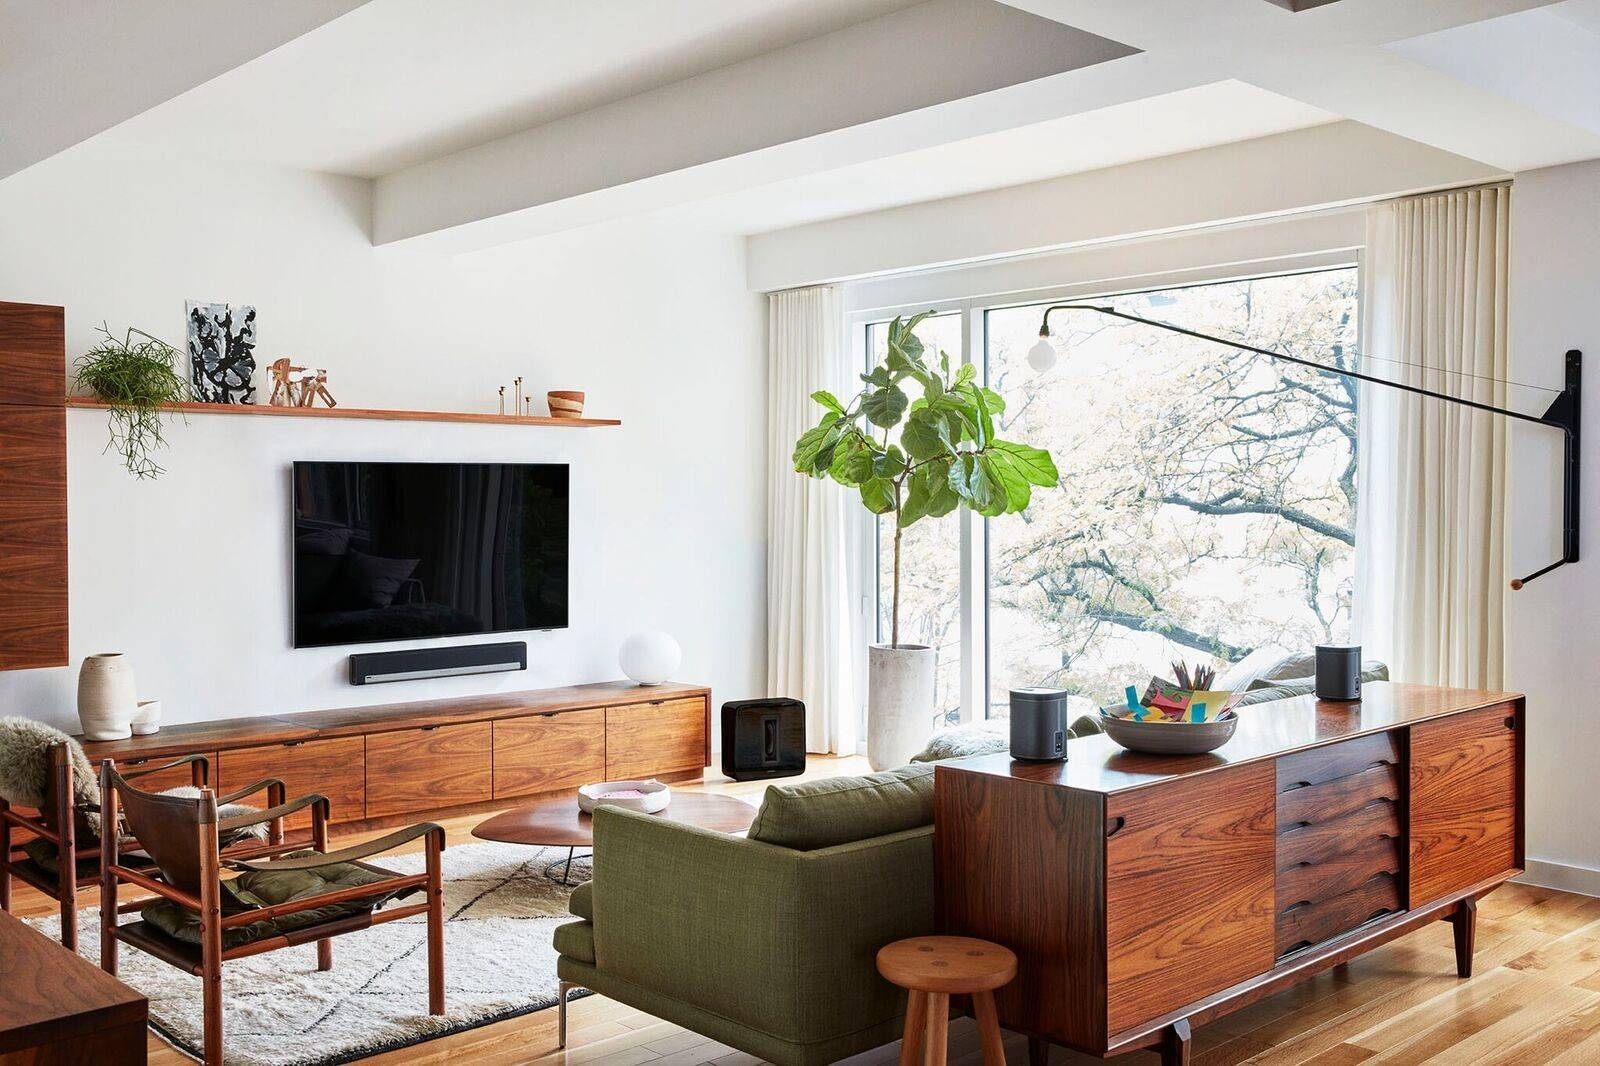 75 Beautiful Mid Century Modern Living Room Pictures Ideas January 2021 Houzz